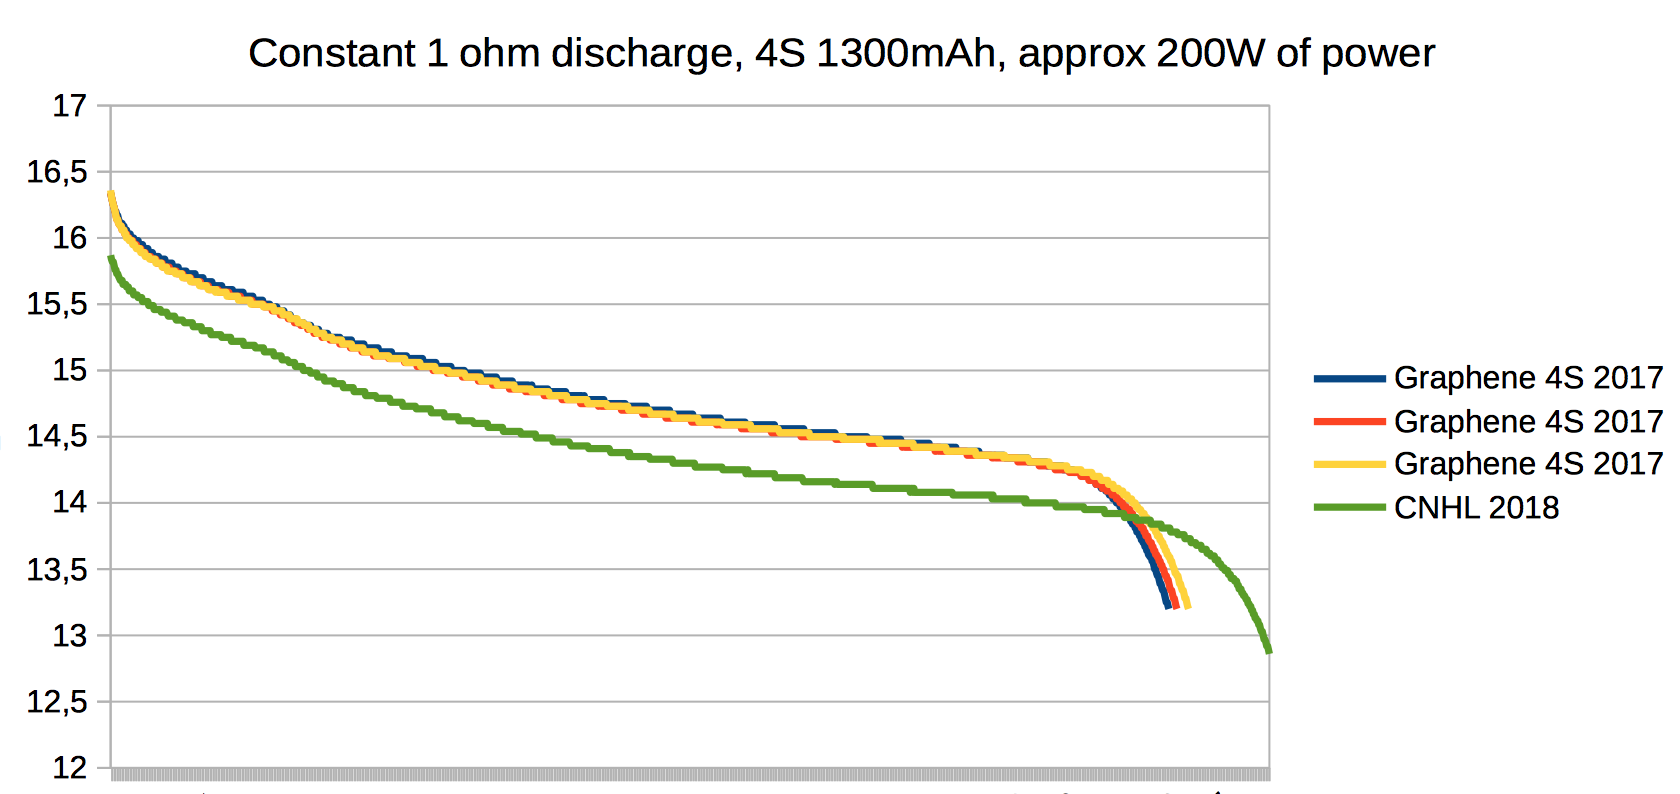 Constant 1 ohm discharge, 4S 1300mAh, approx 200W of power